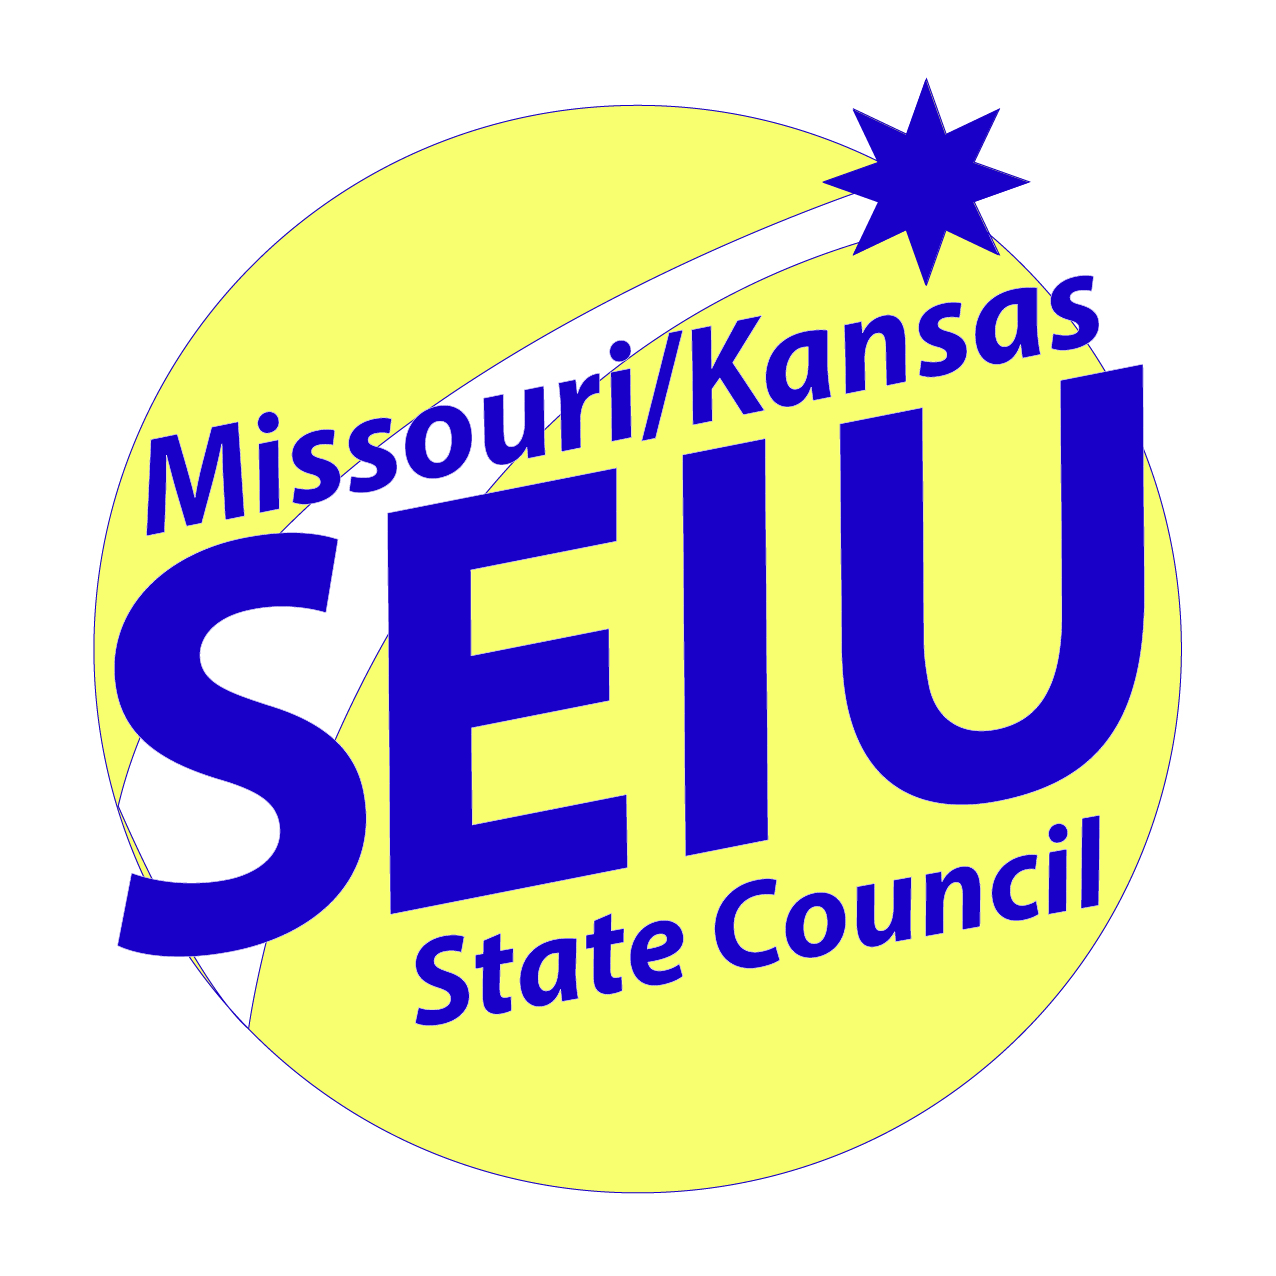 Missouri/Kansas Sate Council